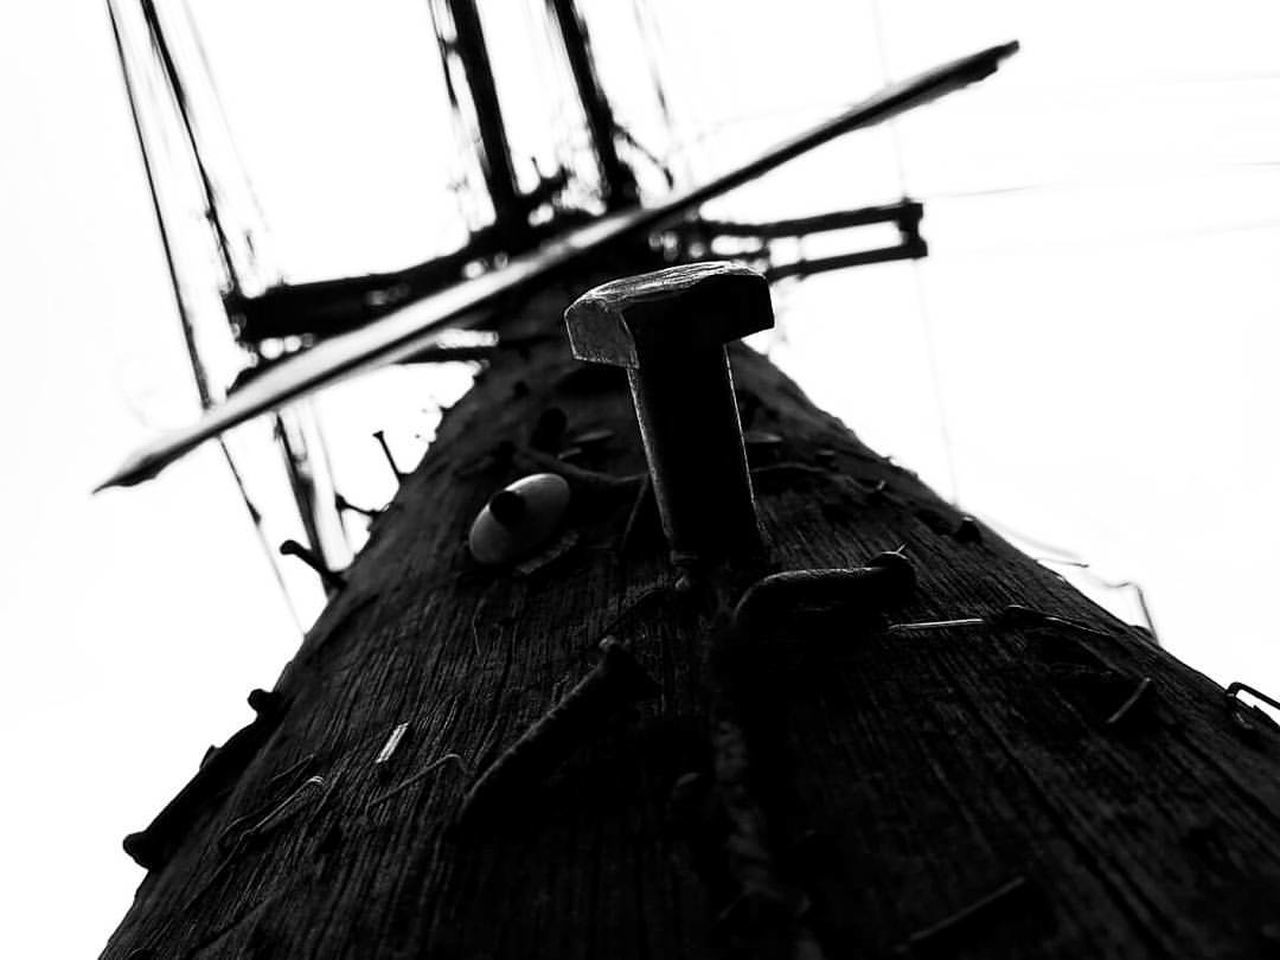 Phone Photography Series: IPhone 4S IPhone Iphonecamera IPhone4s Black And White Fleshwound Pain NoPain NoGain Pole Power Lastmanstanding Used Abused EyeemPhilippines Welcome To Black